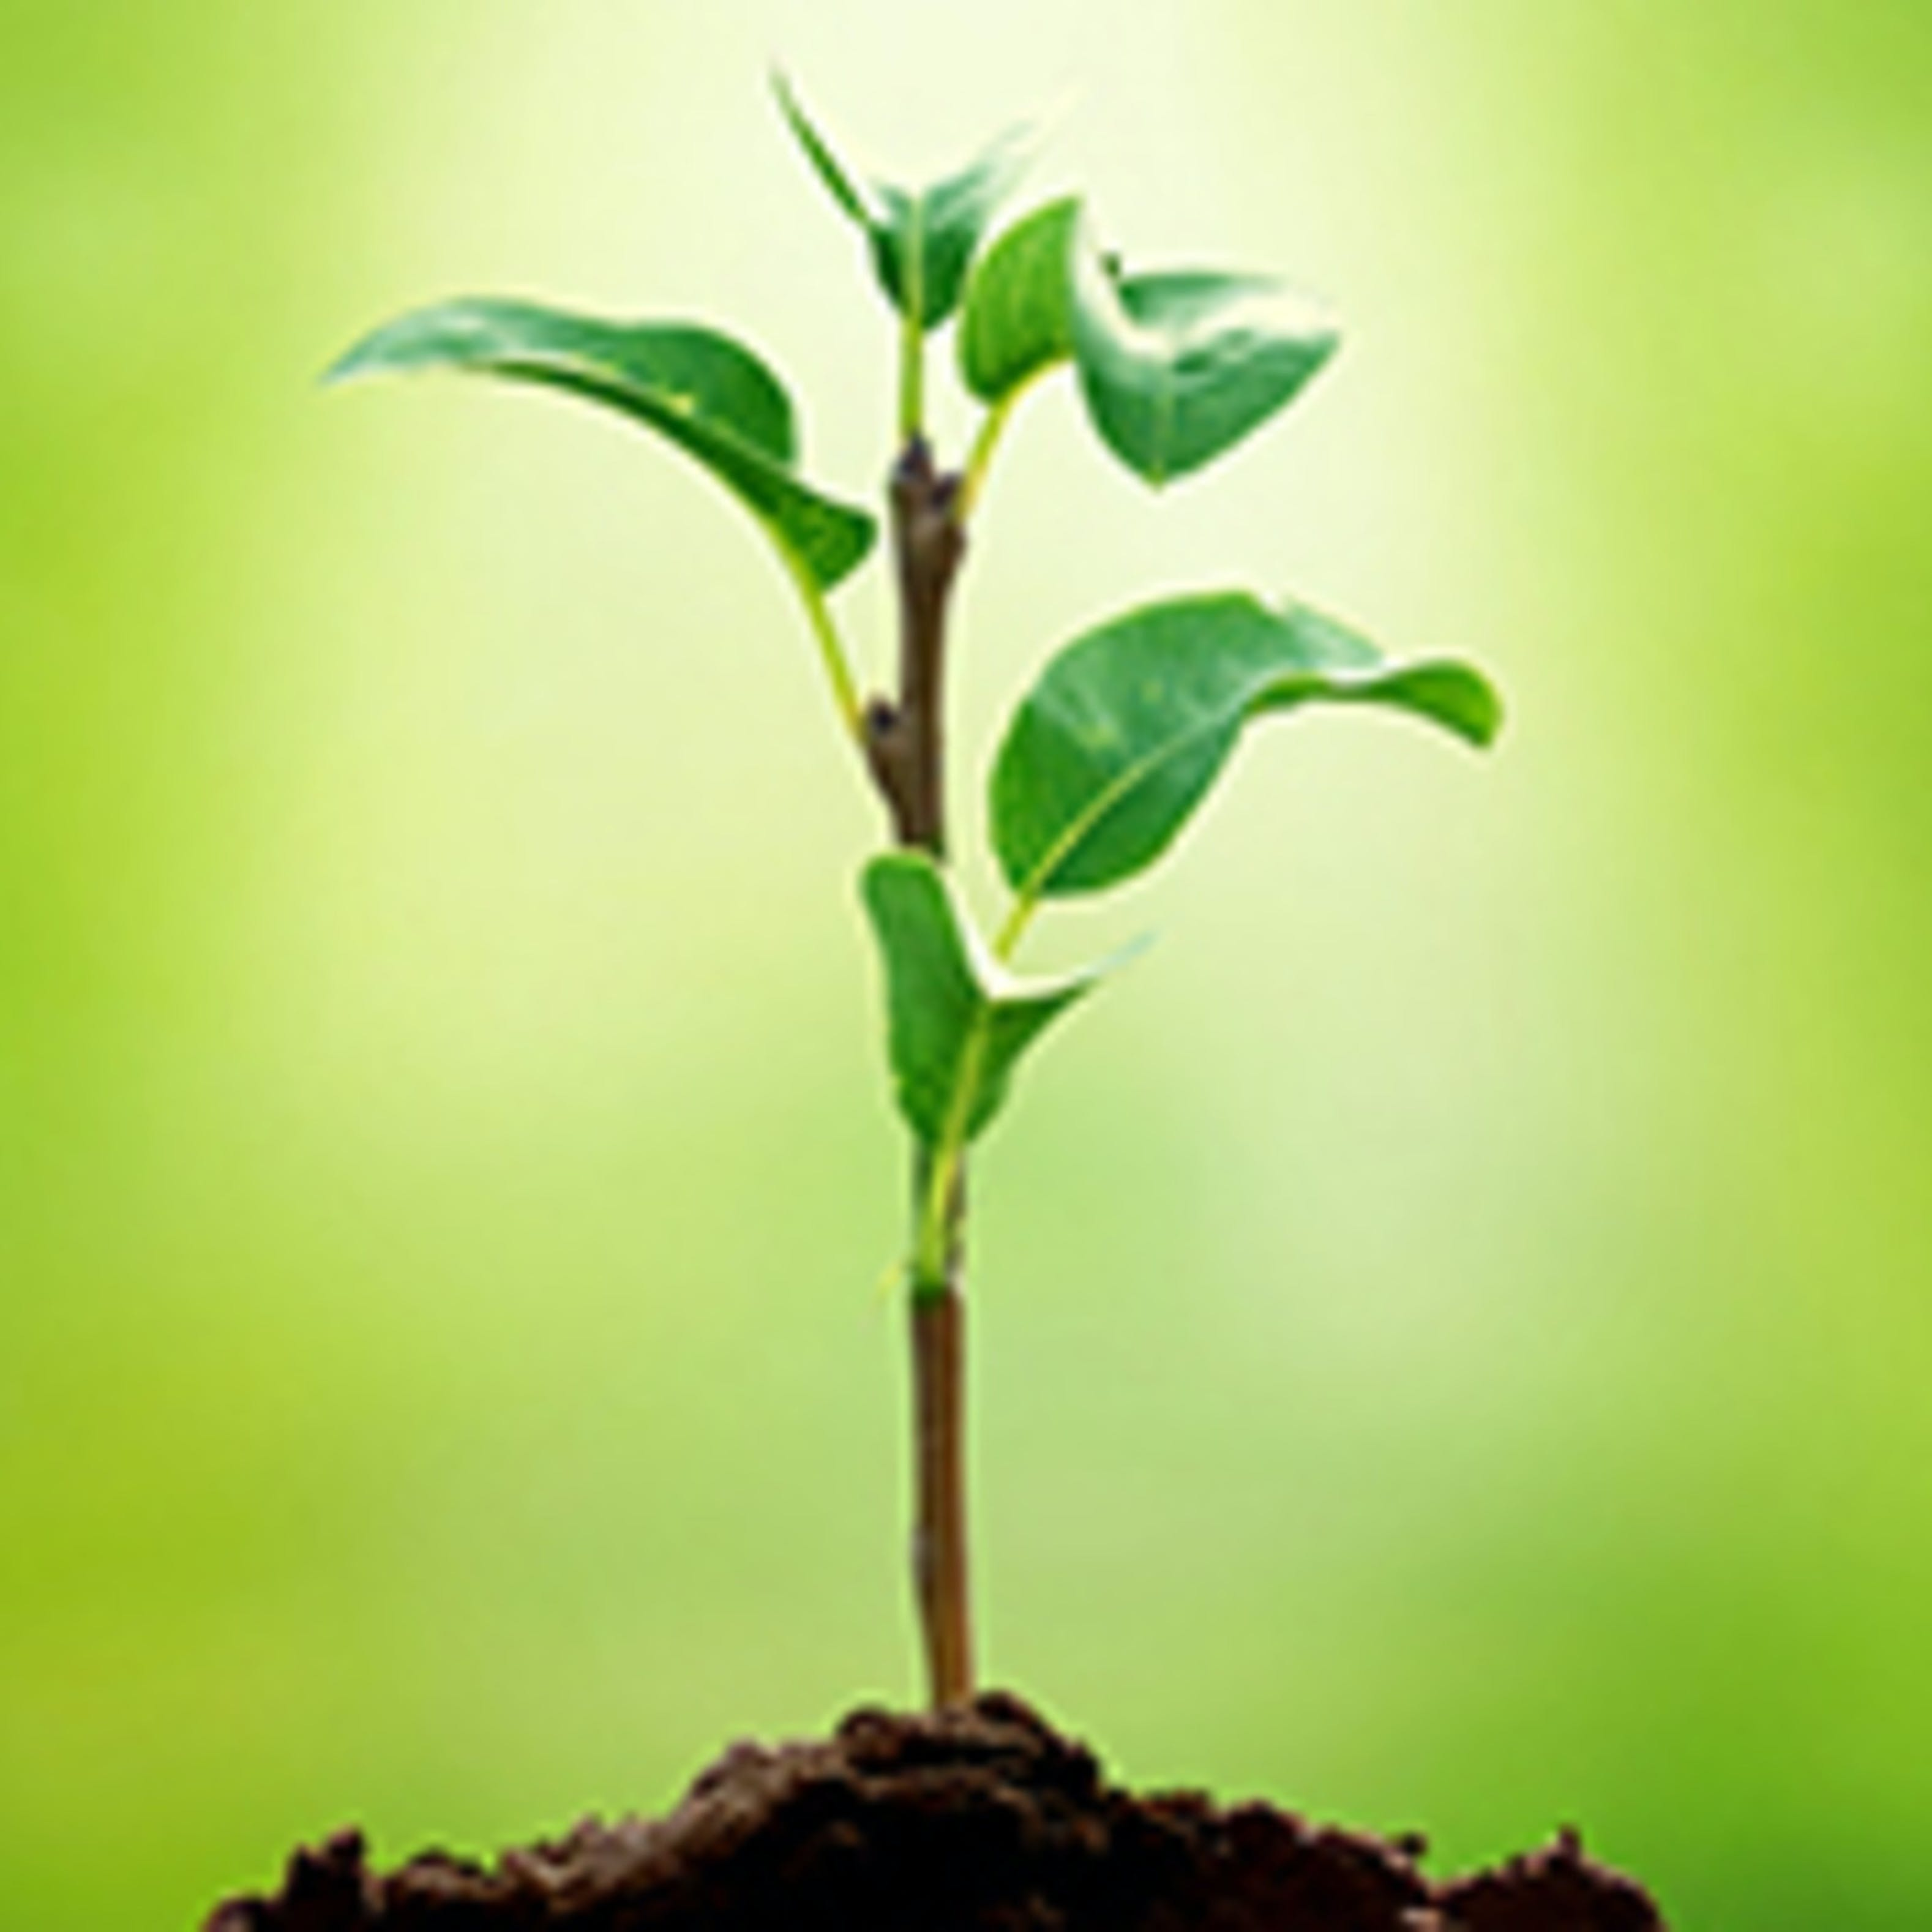 Understanding Plants - Part I: What a Plant Knows | Coursera